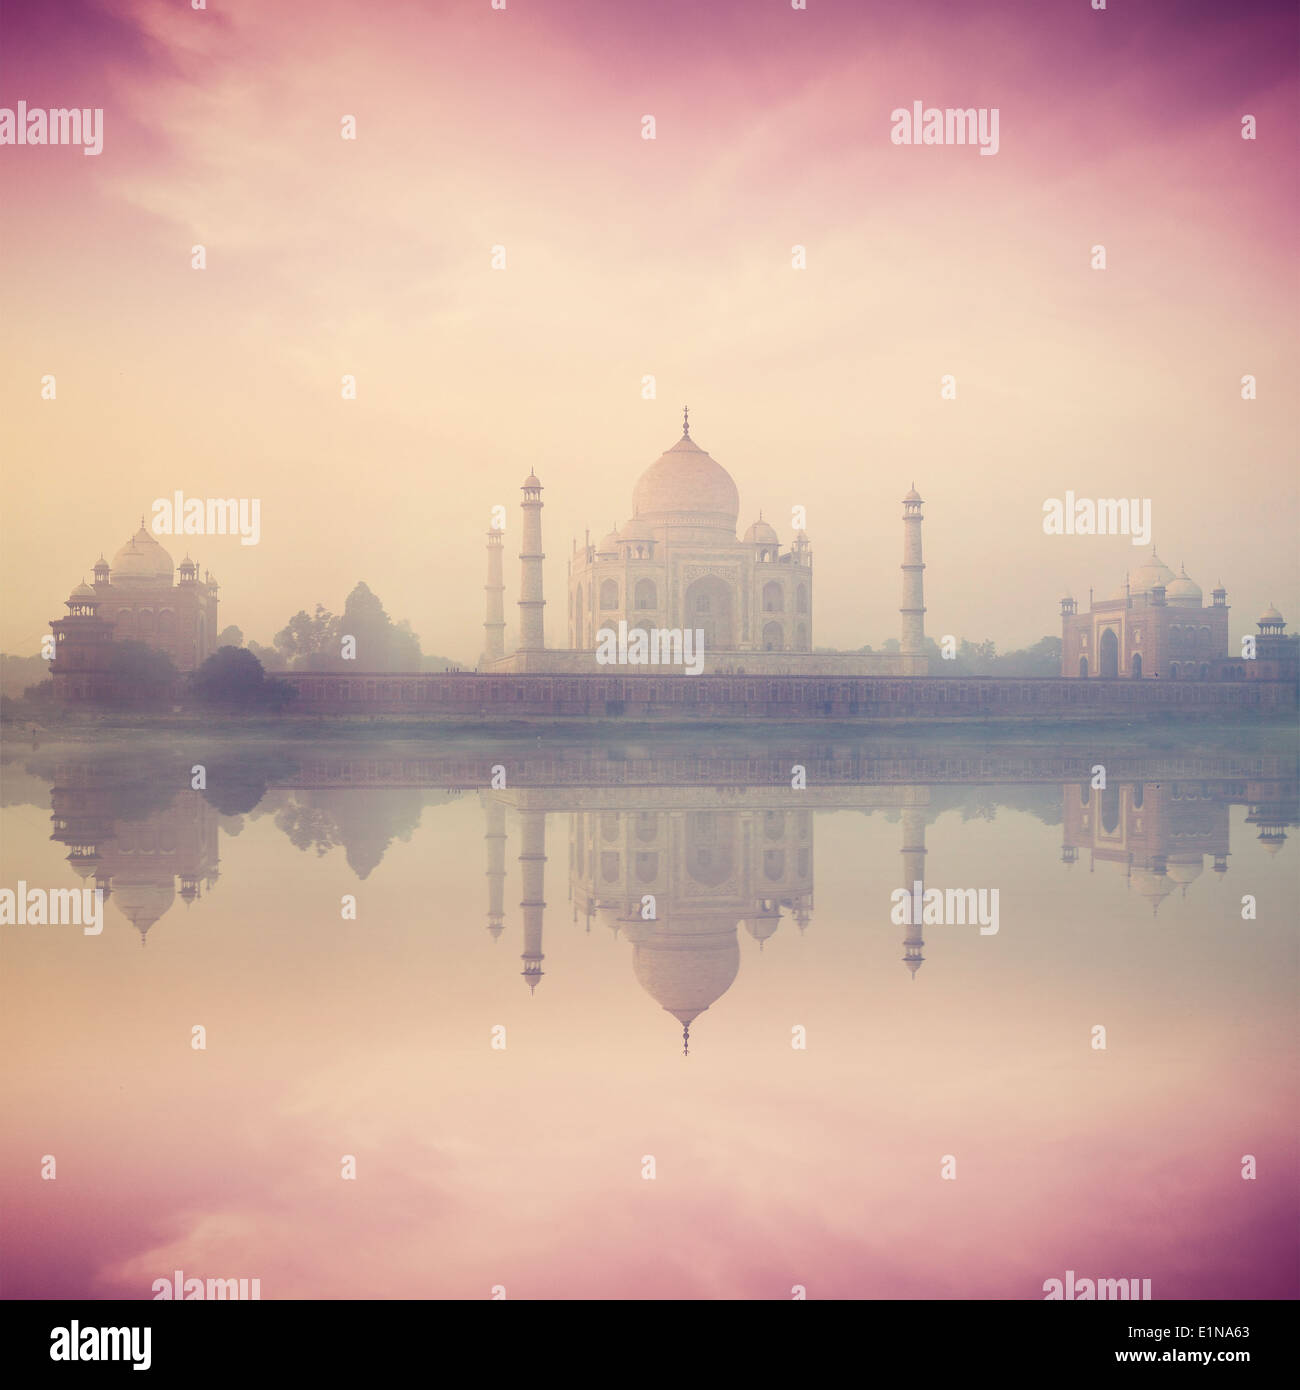 Vintage retro hipster style image of Taj Mahal on sunrise sunset reflection in Yamuna river panorama in fog, Indian Symbol - Stock Image